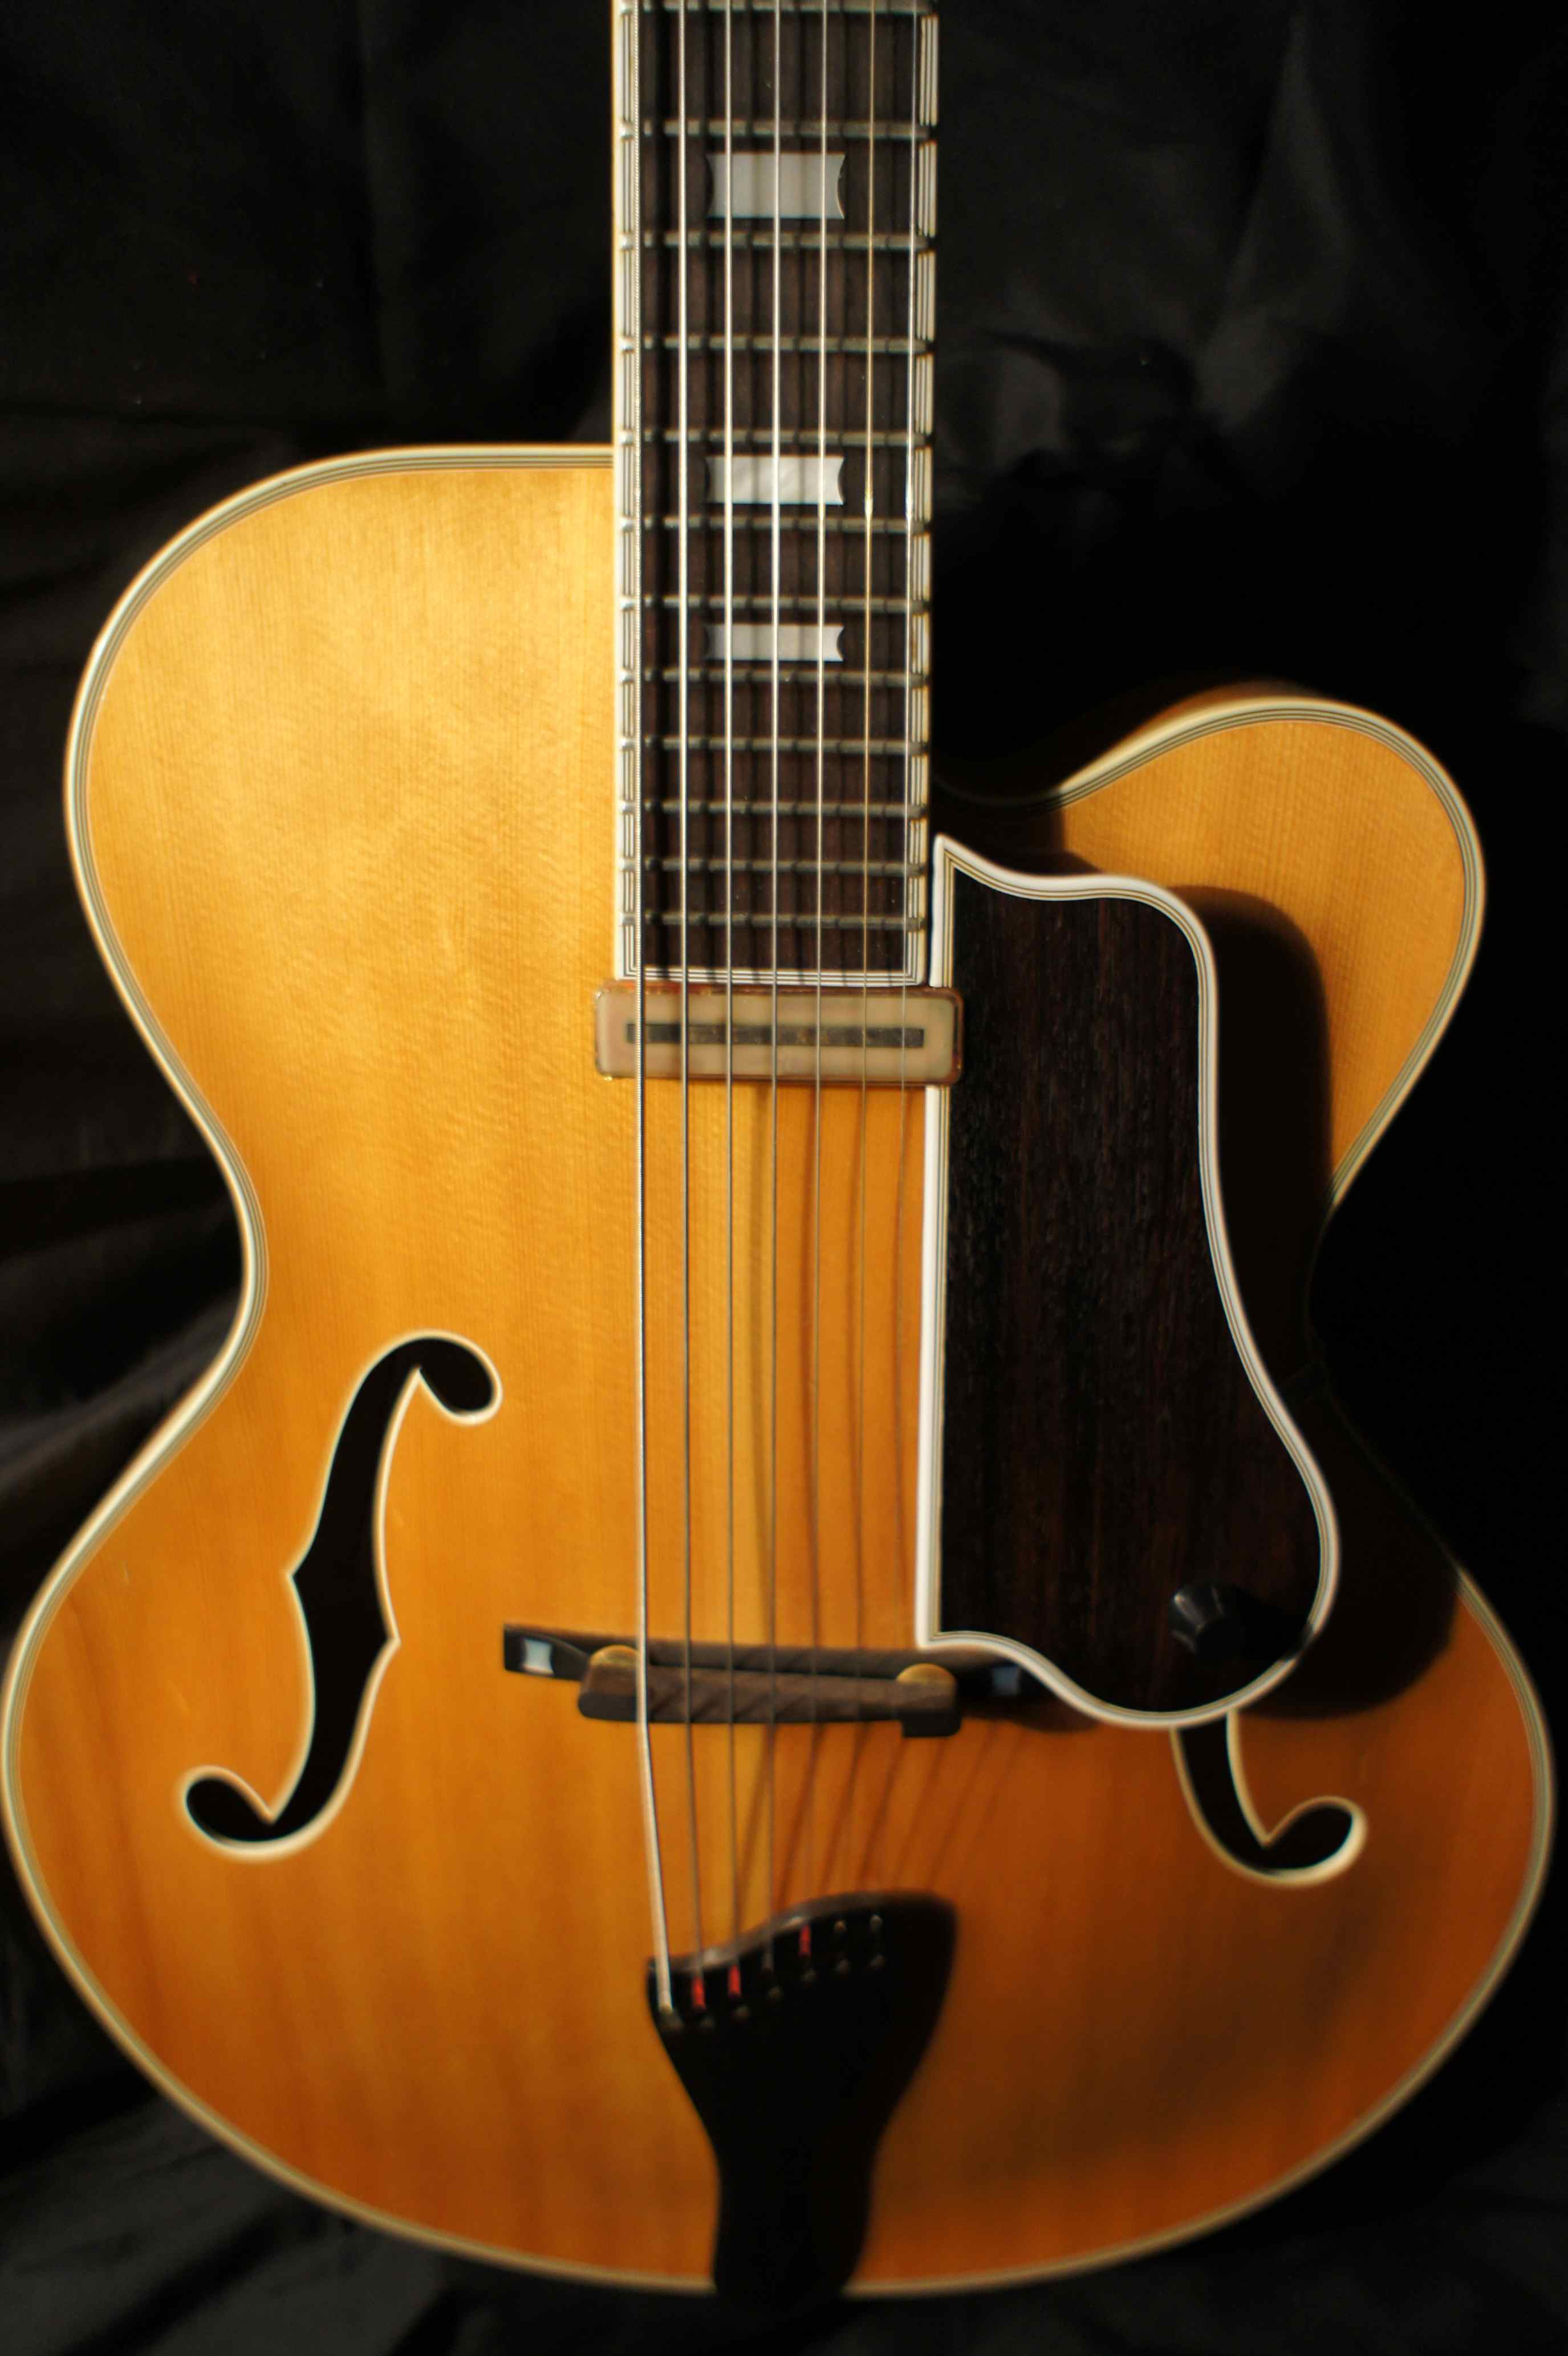 bob benedetto 7 string fratello archtop jazz guitar 1982 tune your sound. Black Bedroom Furniture Sets. Home Design Ideas